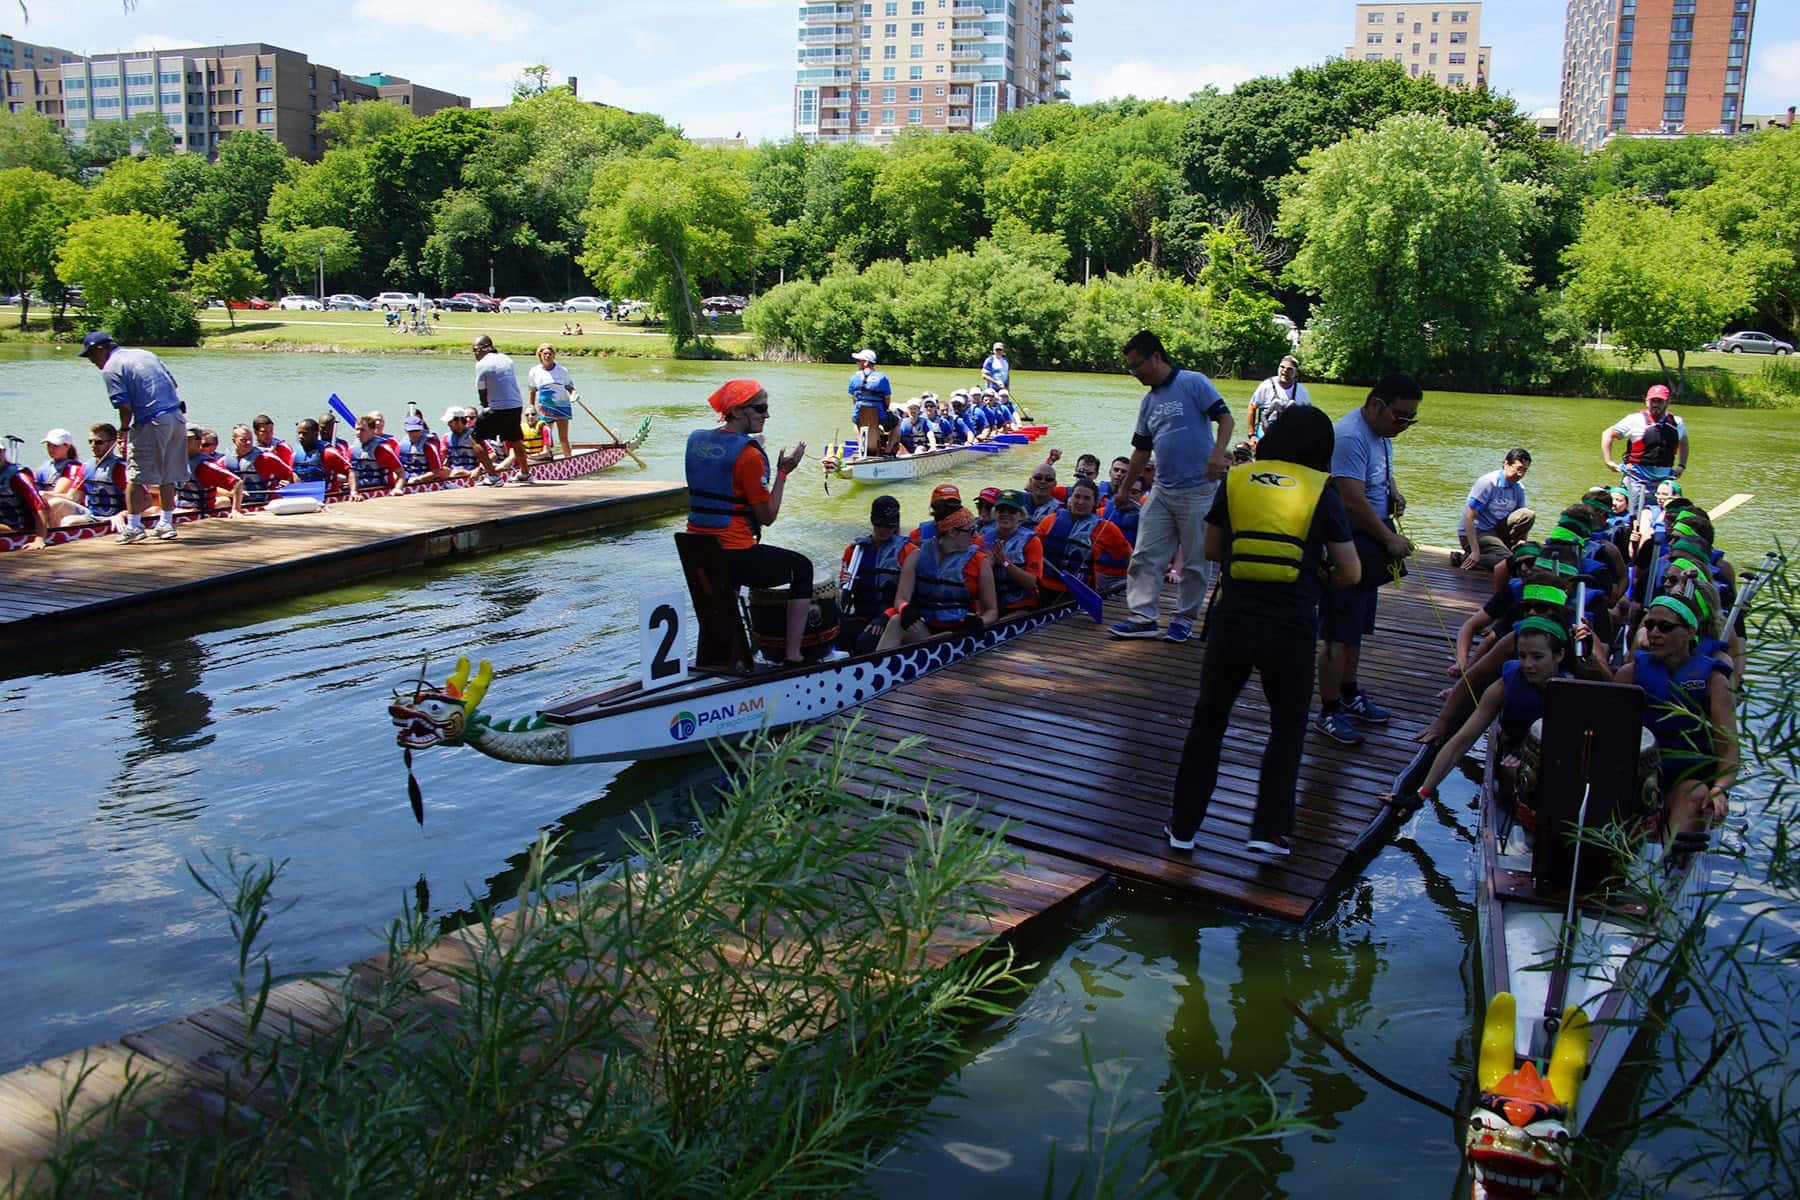 080116_dragonboat_album_01_05